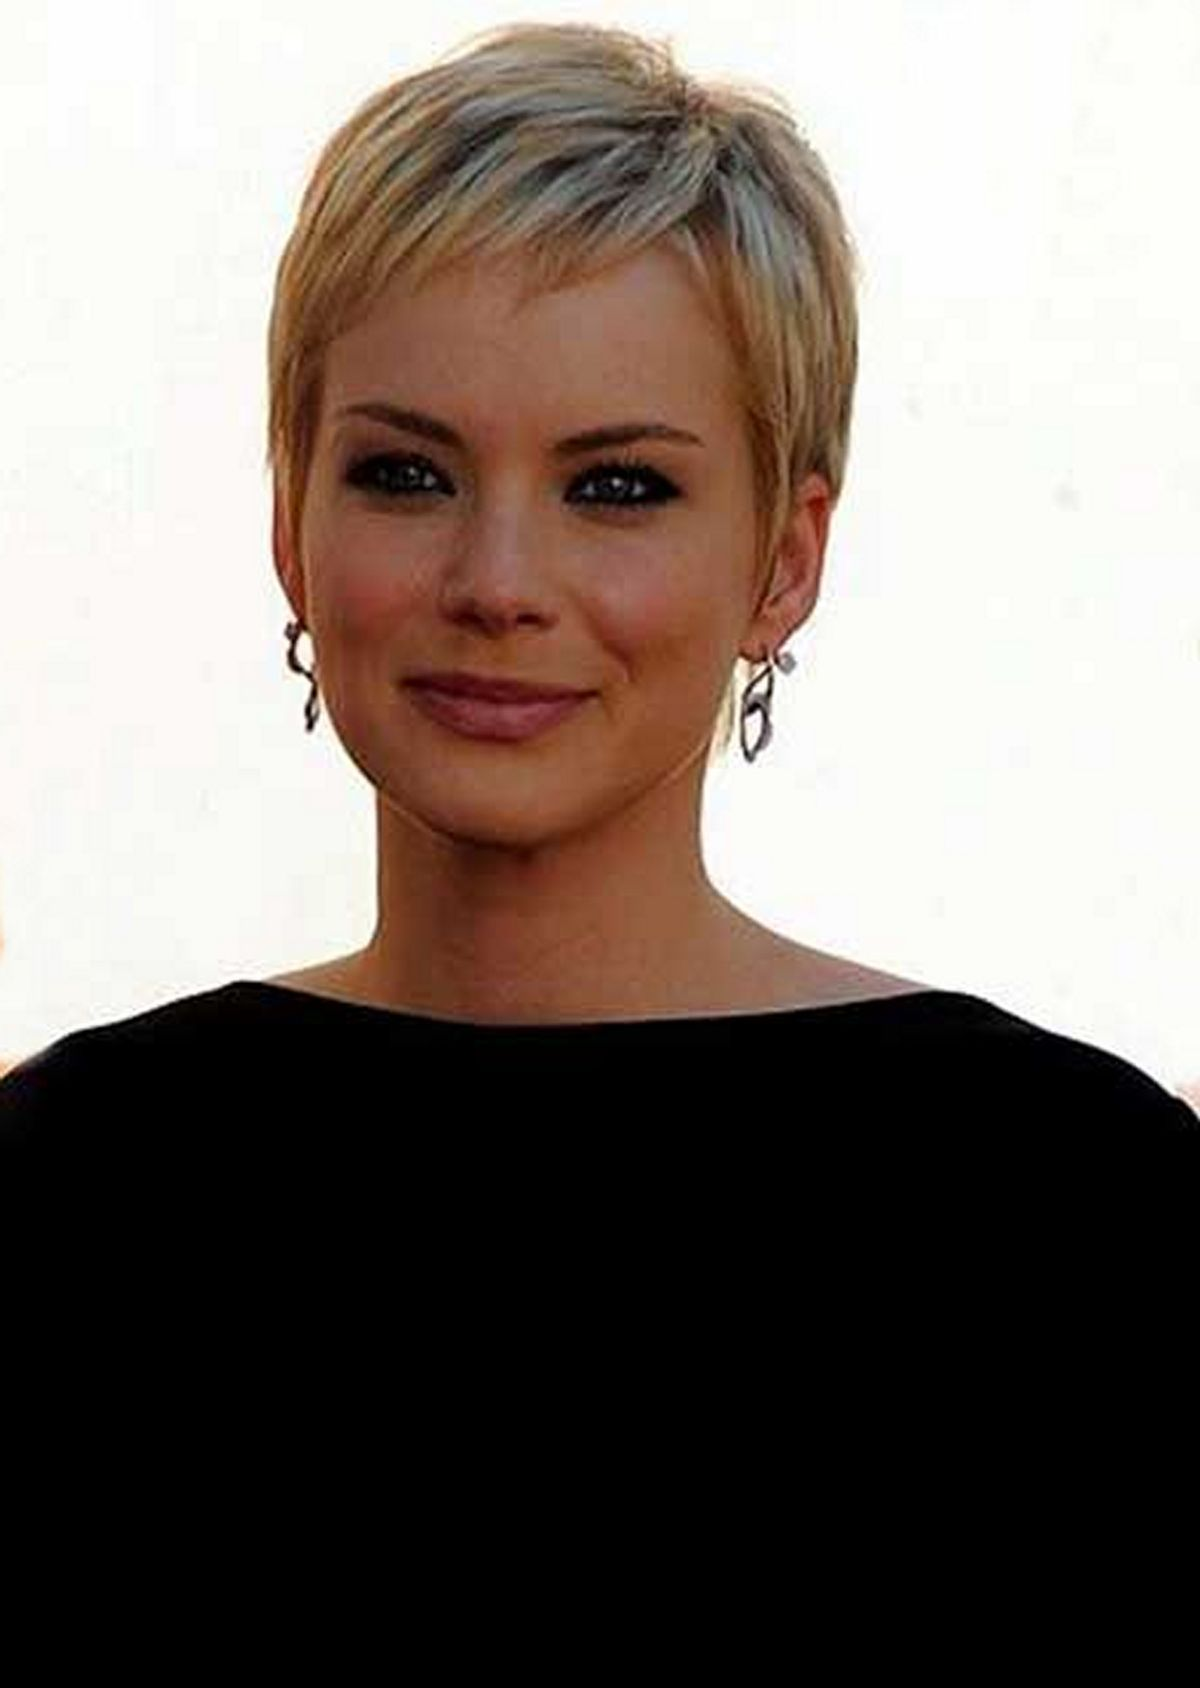 Pixie Haircuts For Women (70